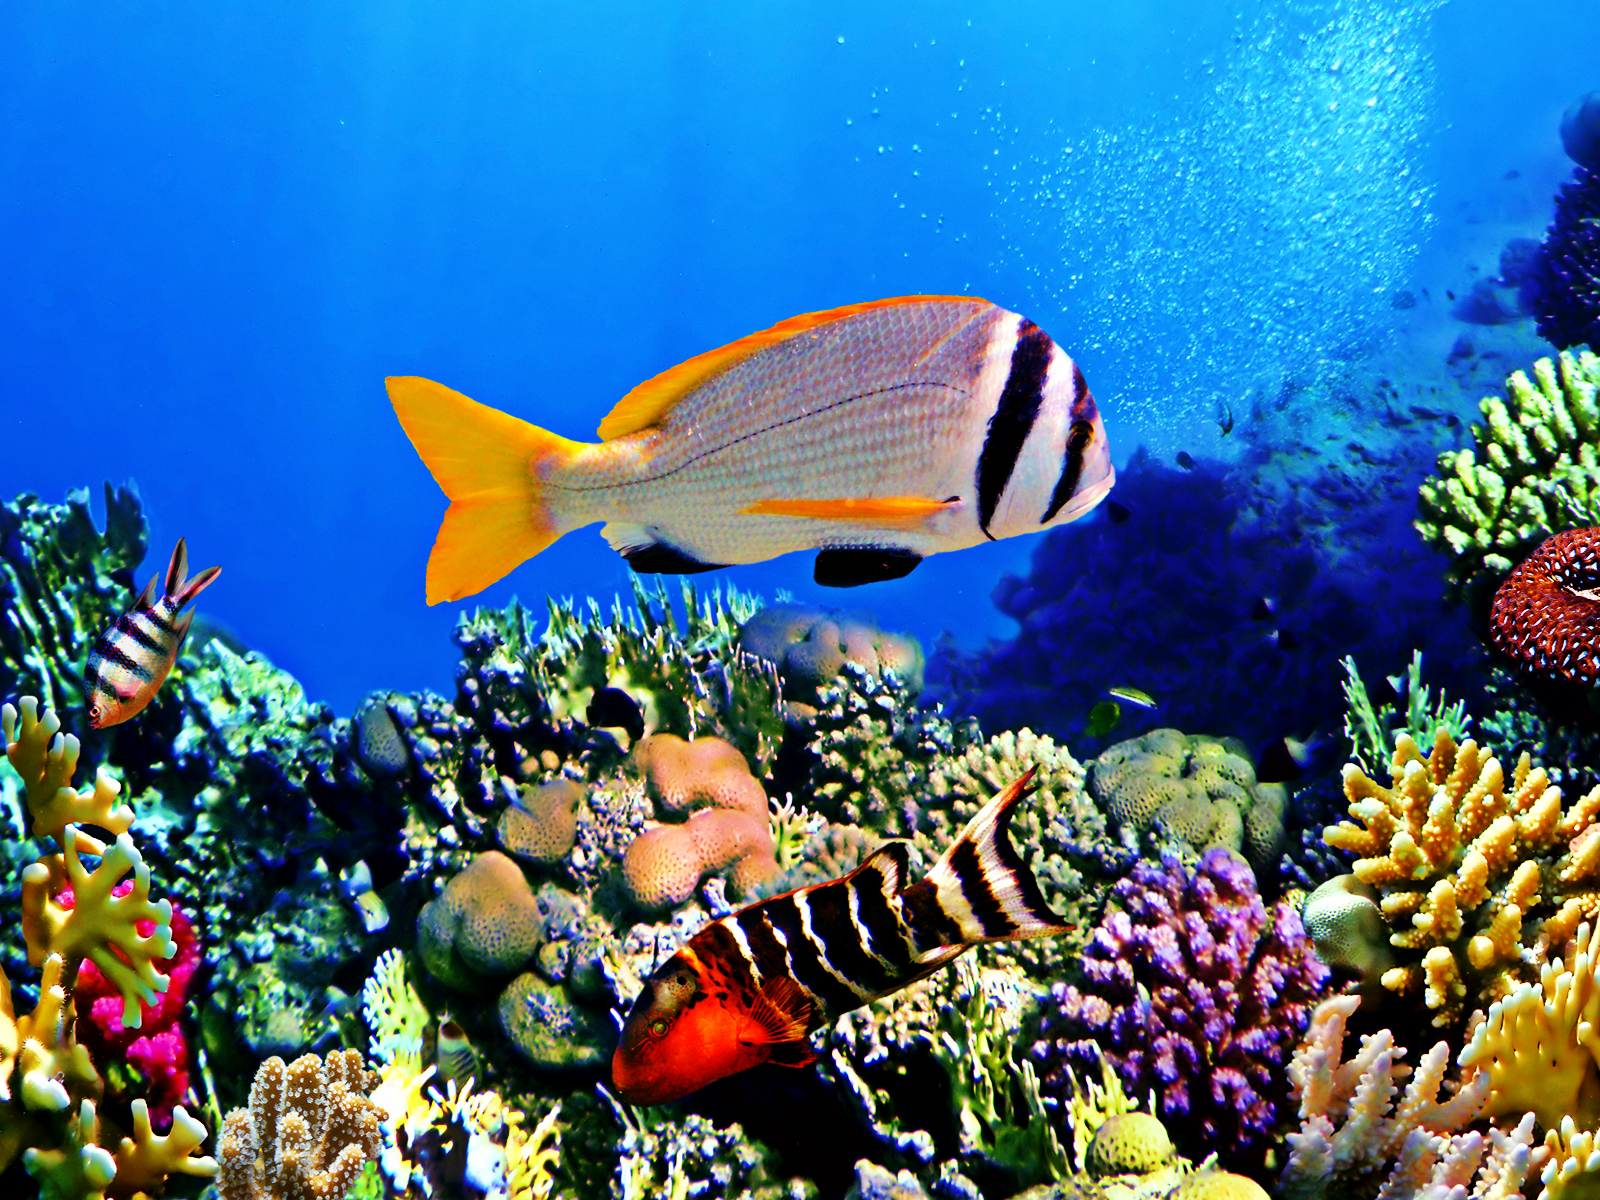 Bright Fishes Aquarium Endangered Great Barrier Reef Sea Fish